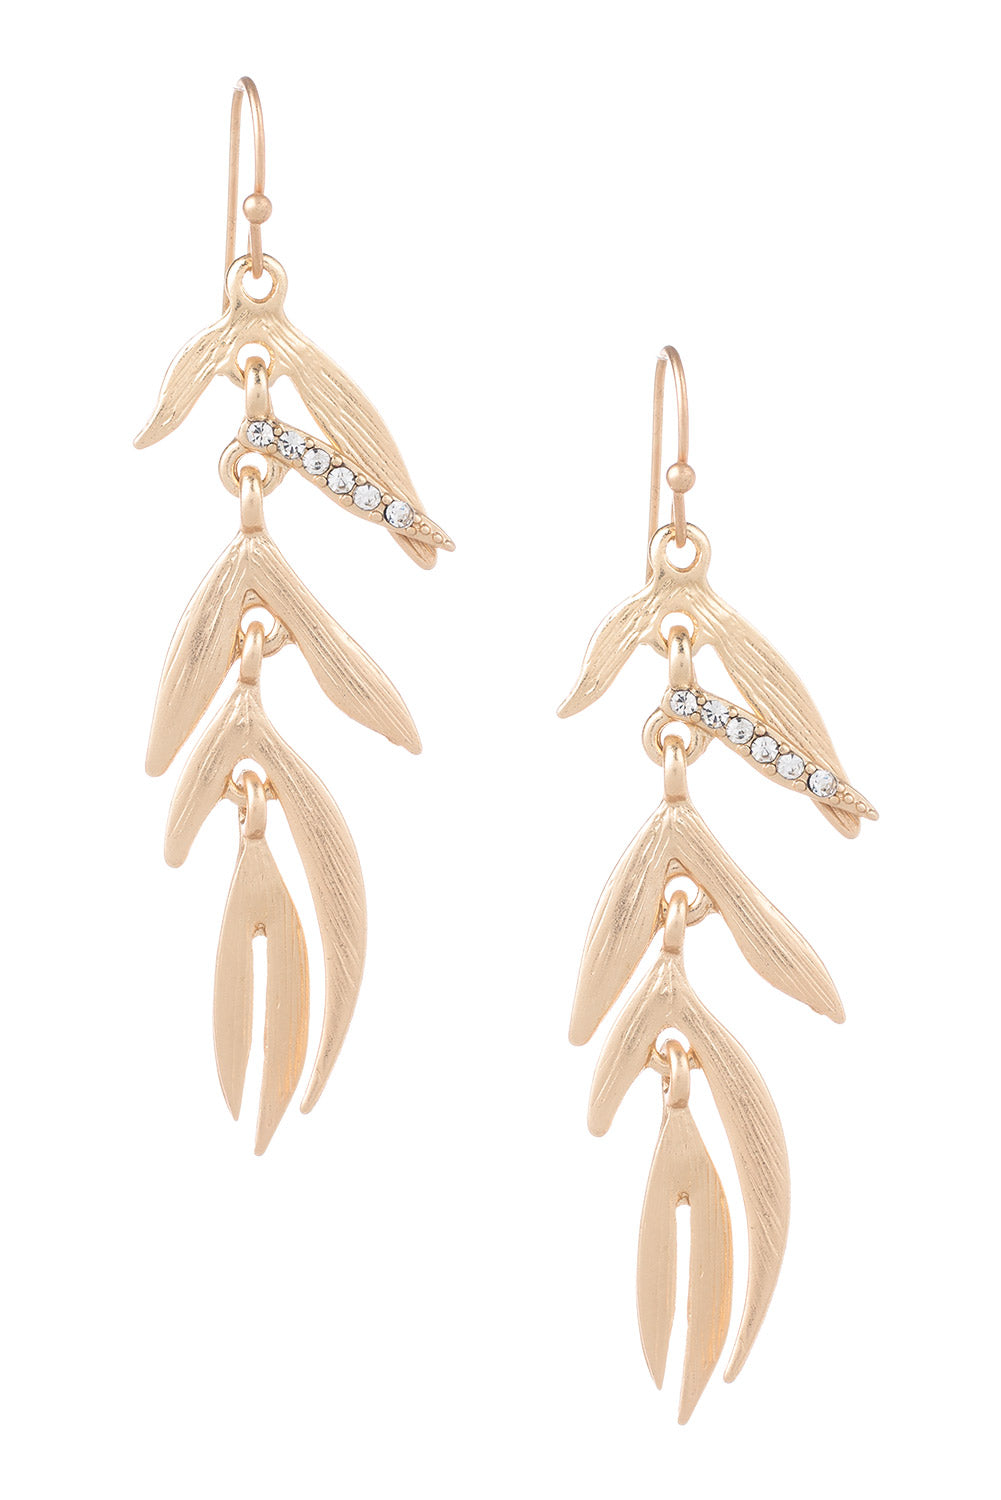 Type 3 Drive Earrings